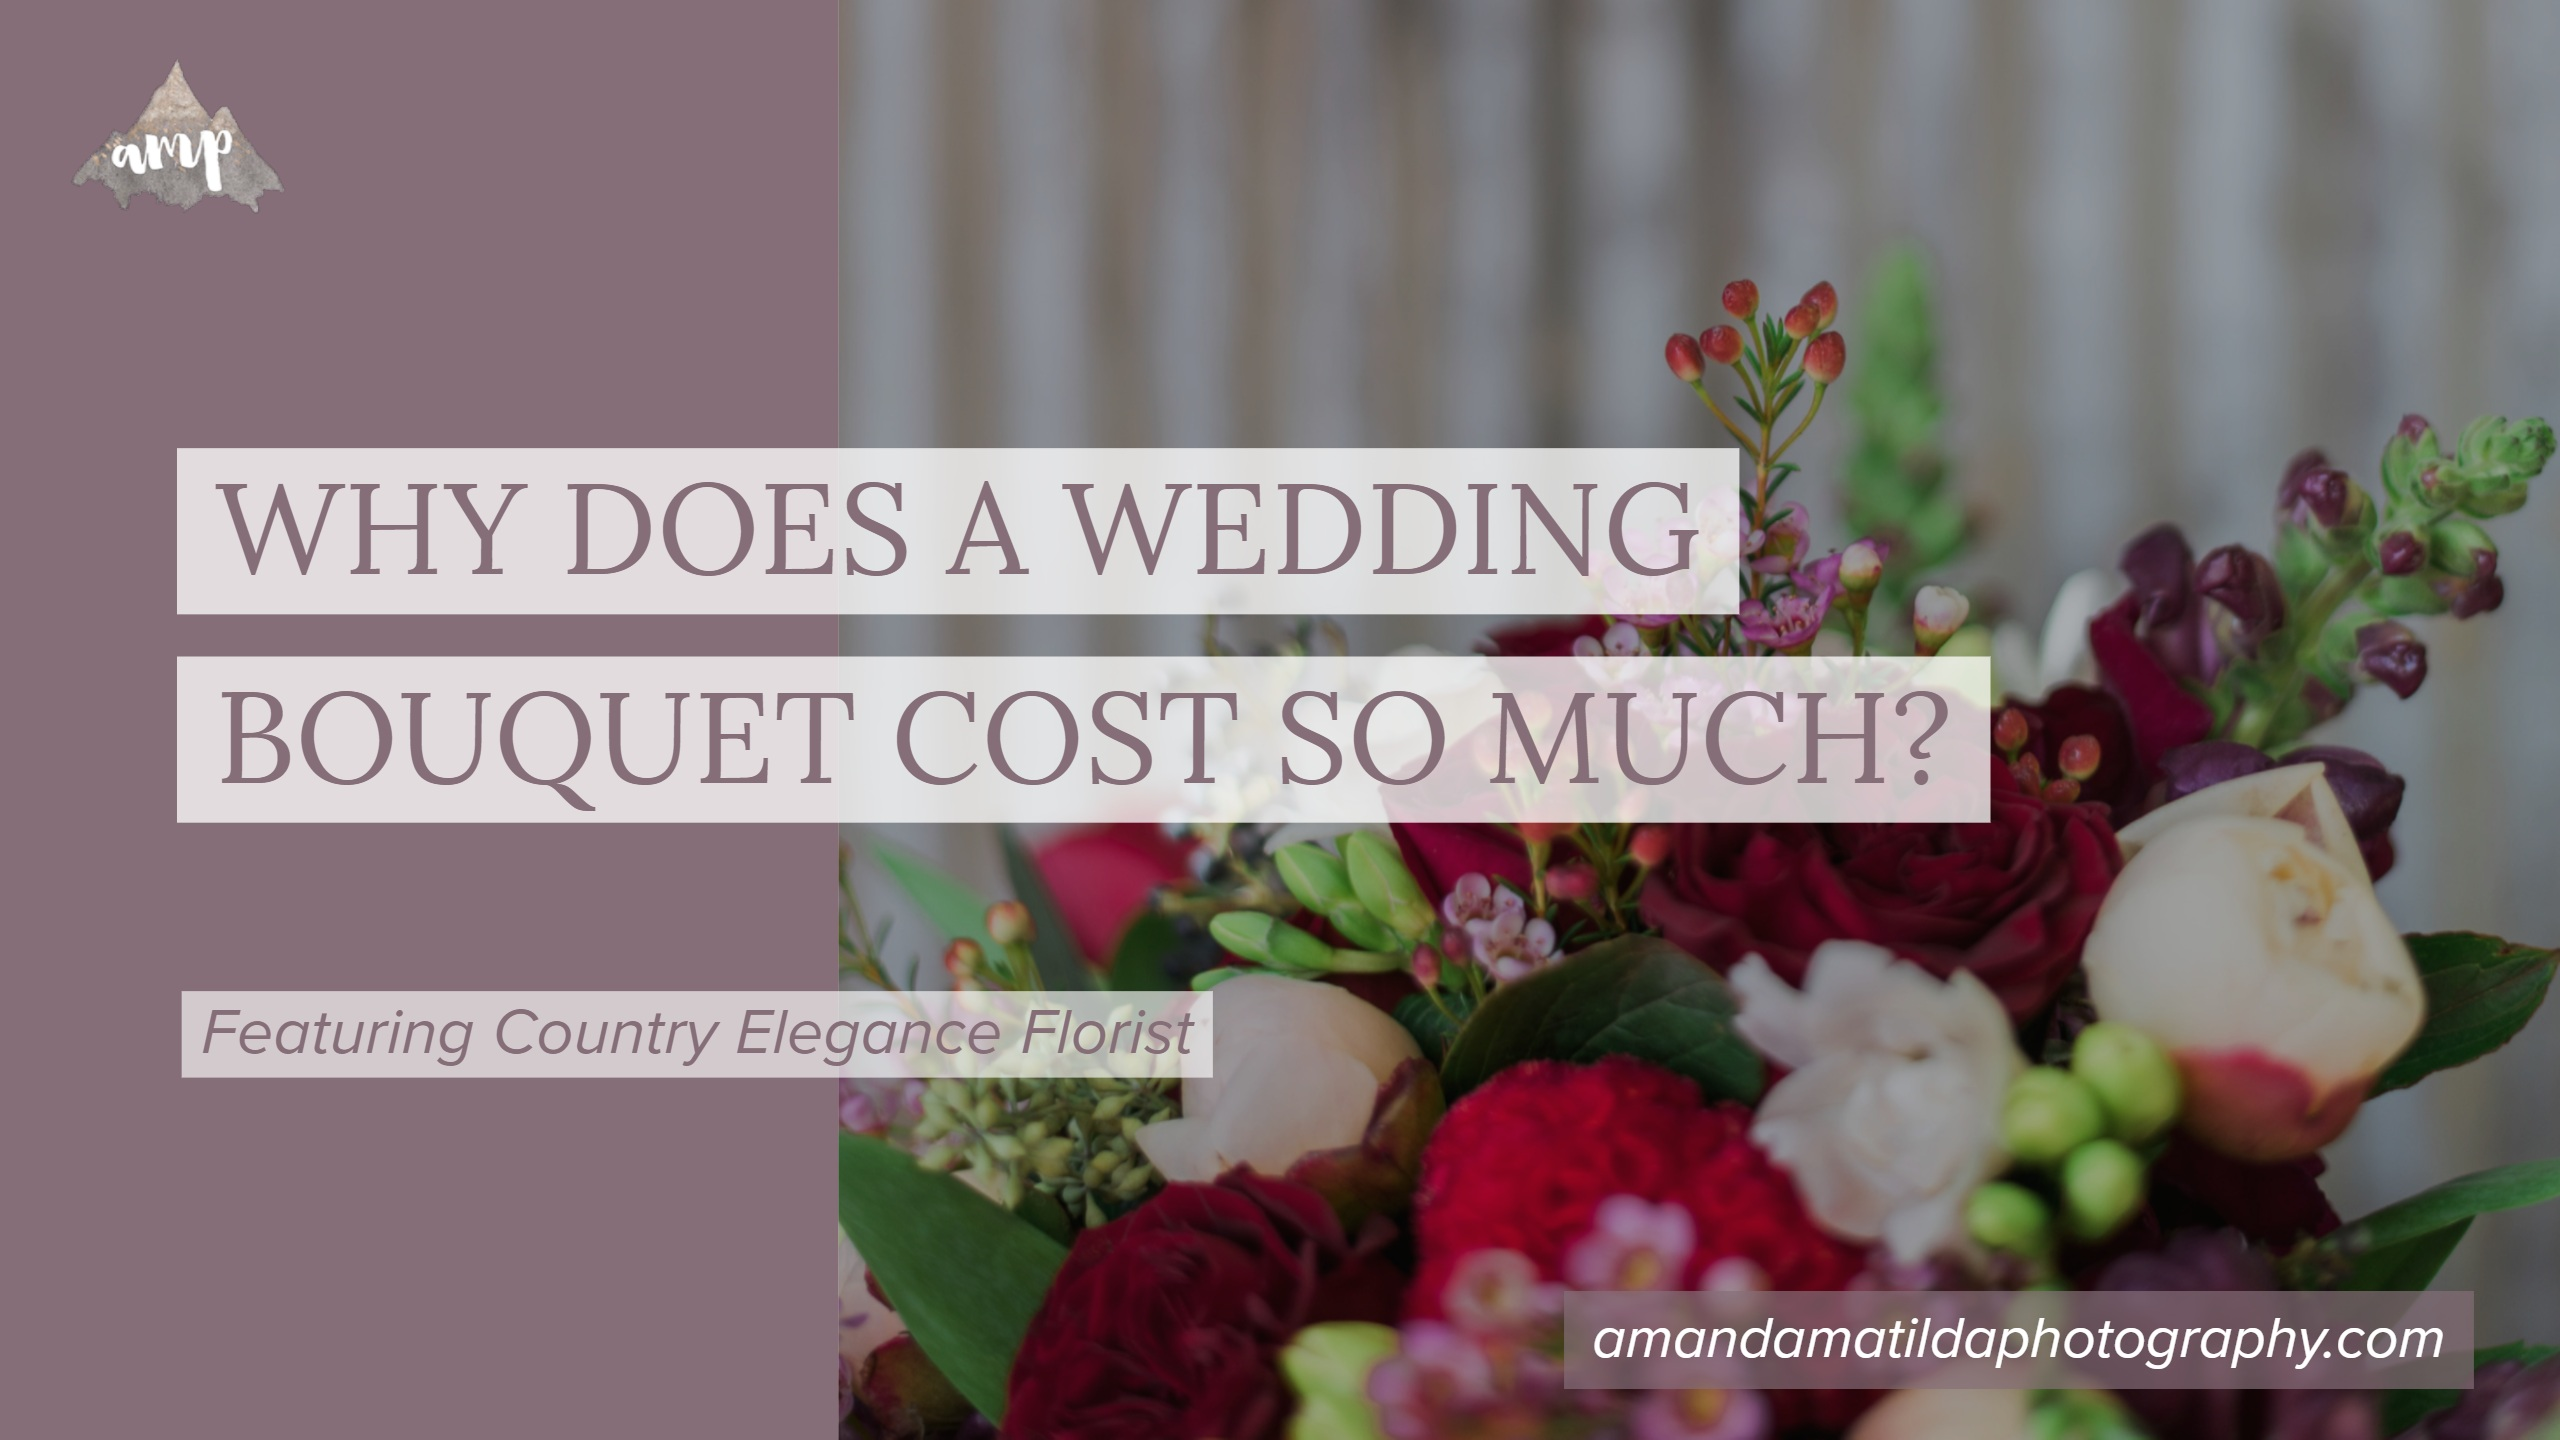 Why does a wedding bouquet cost so much? | Country Elegance Florist ...